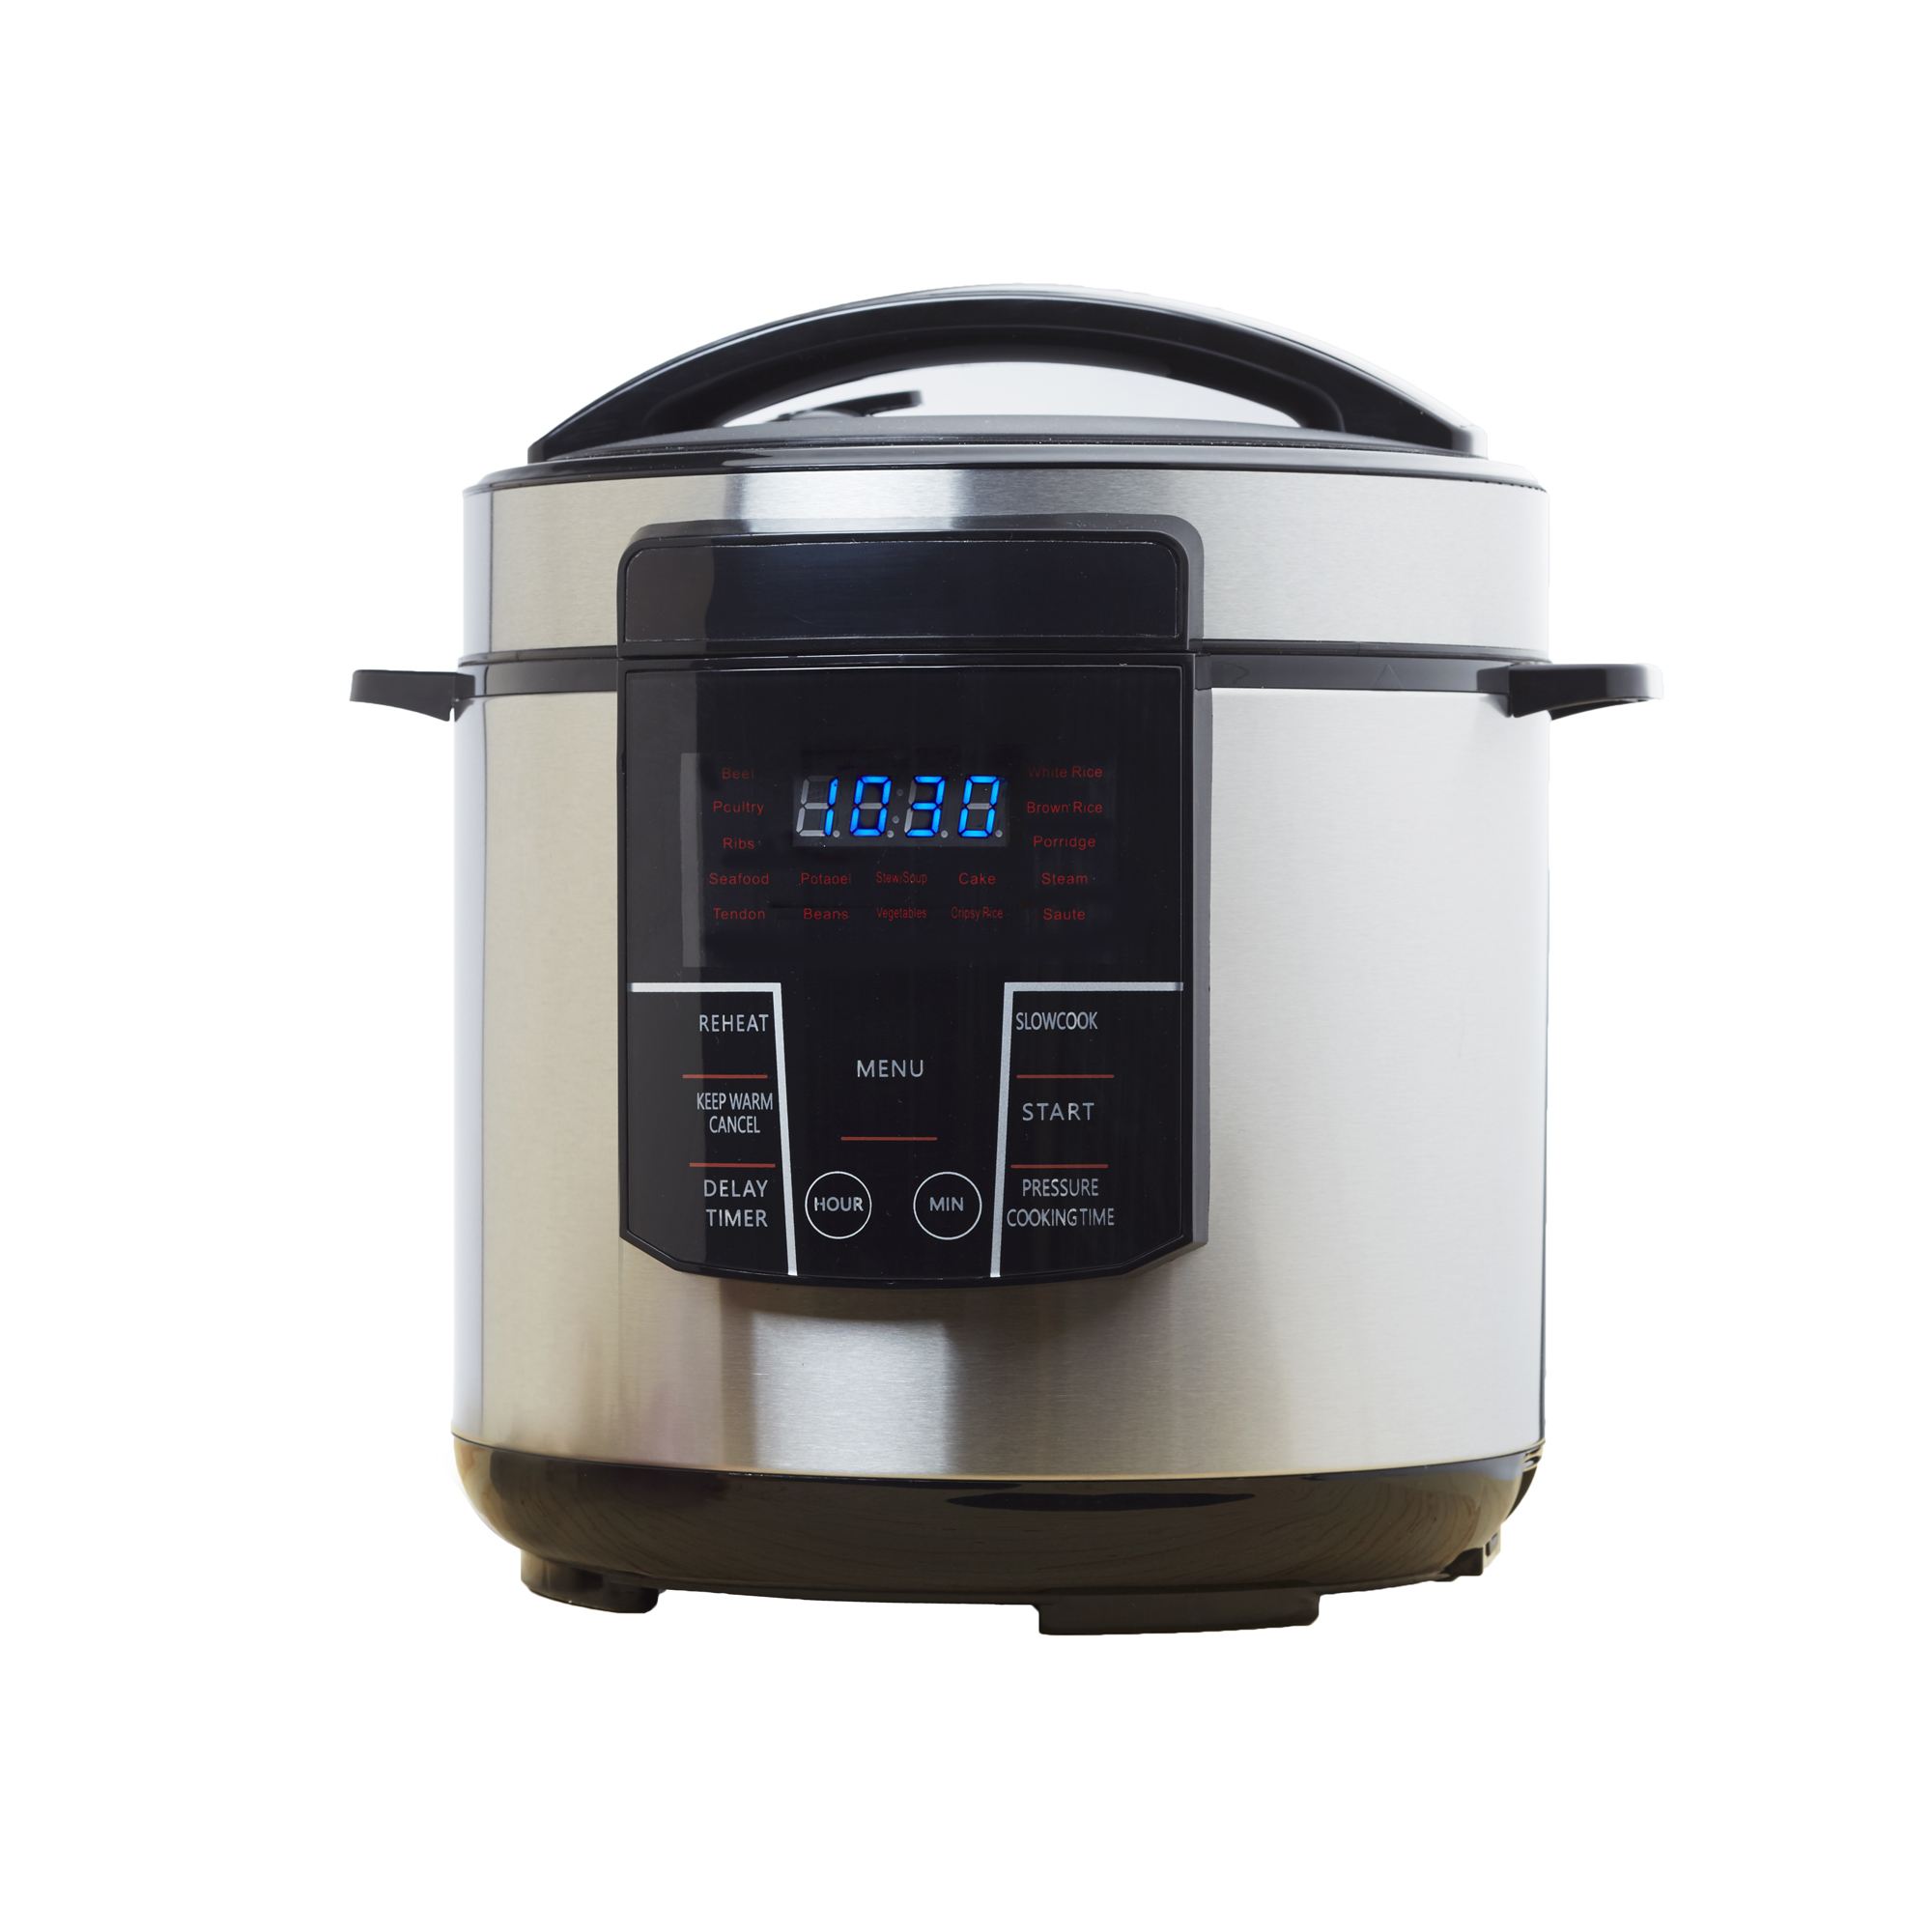 Brentwood 6 Quart Electric Pressure and Slow Cooker